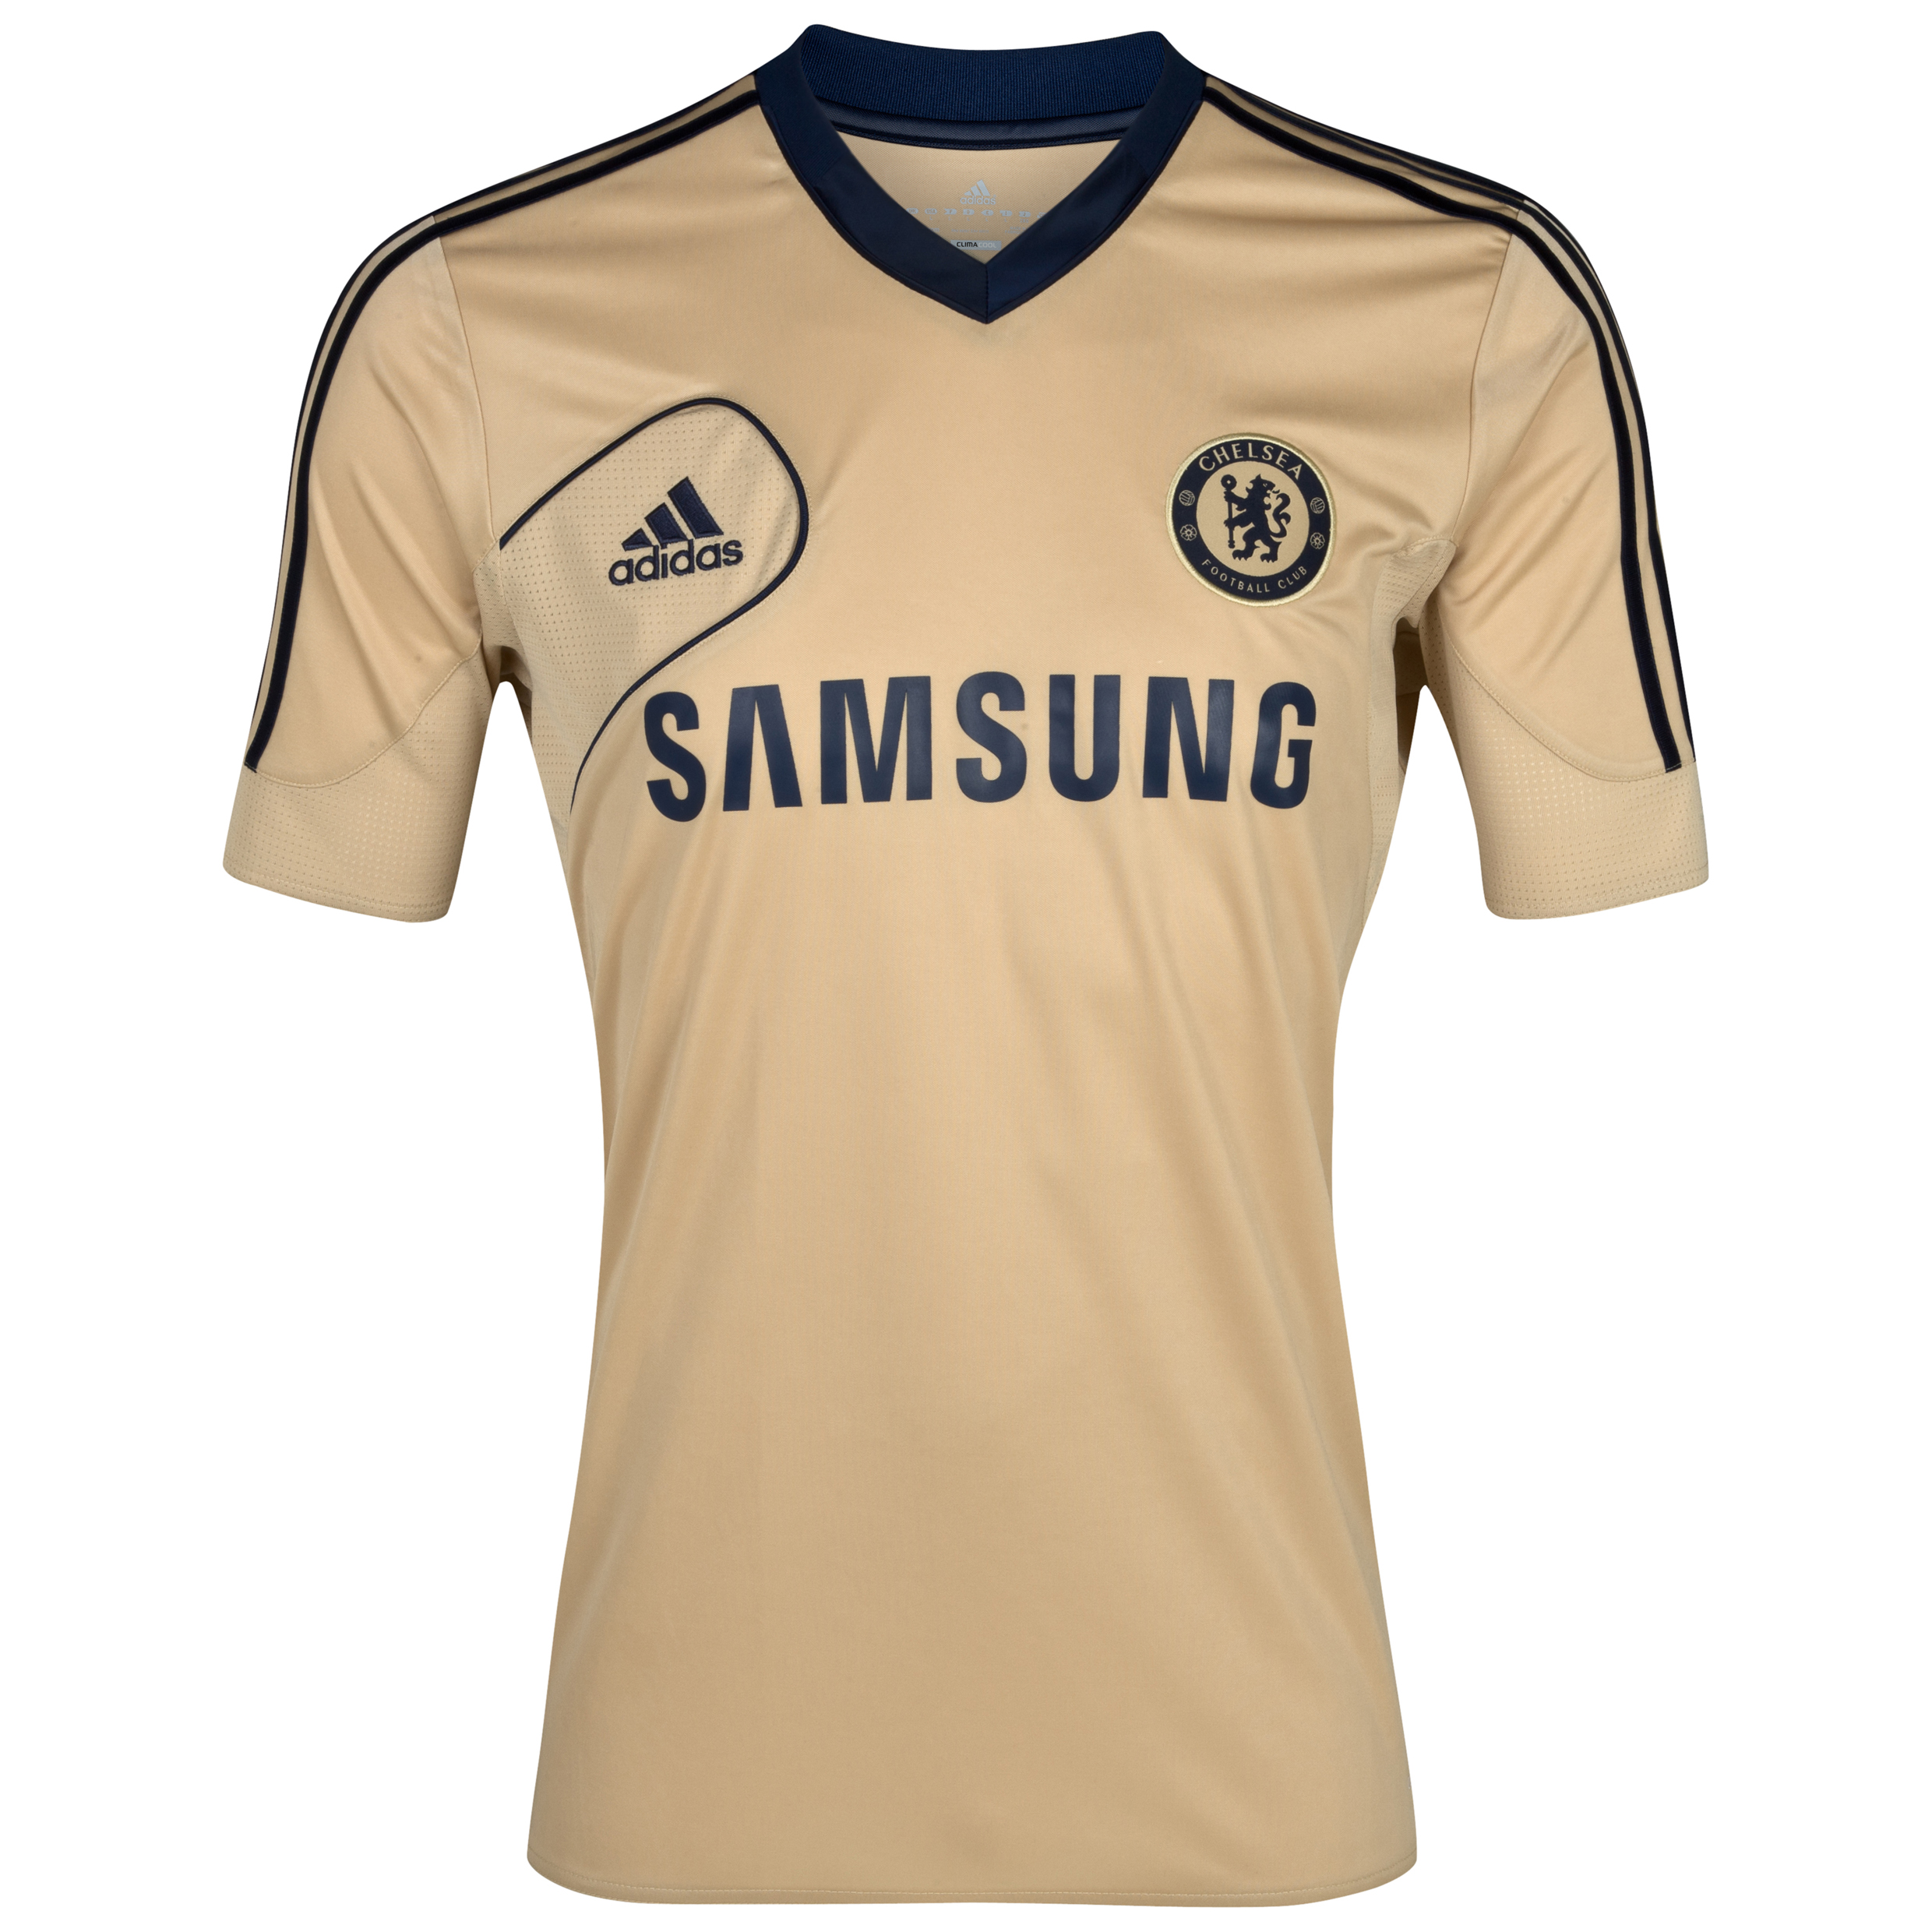 adidas Chelsea Training Jersey - Light Football Gold/Collegiate Navy